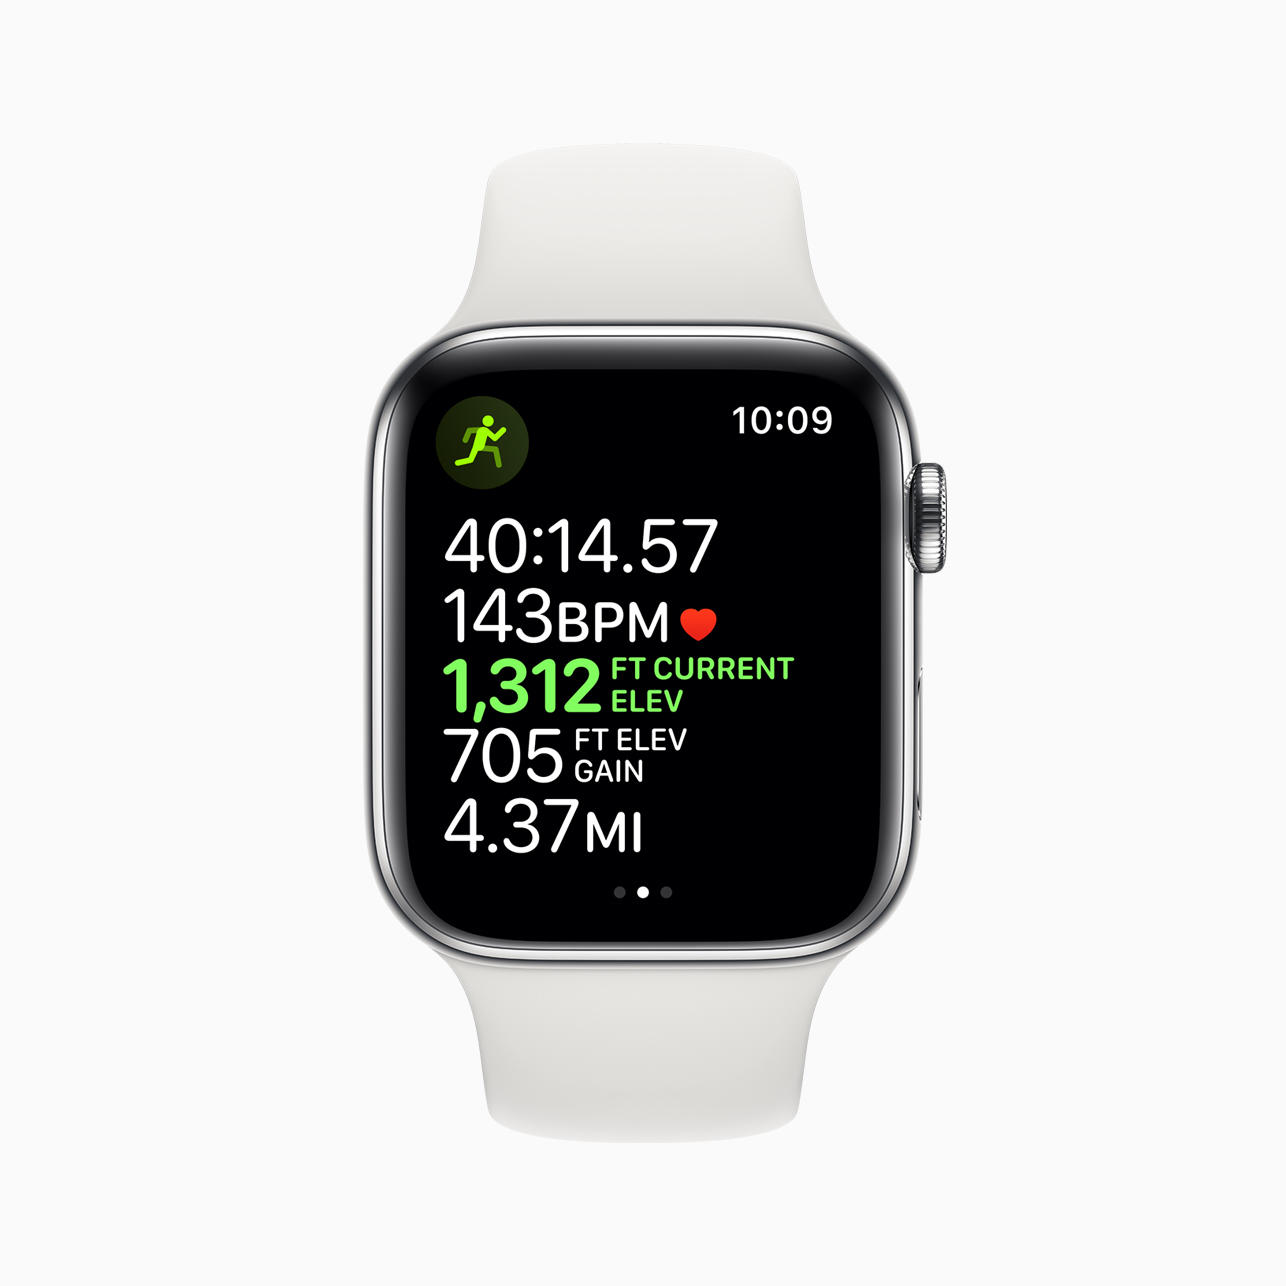 apple-watch-series-5-workout-outdoor-run-elevation-open-goal-screen-091019